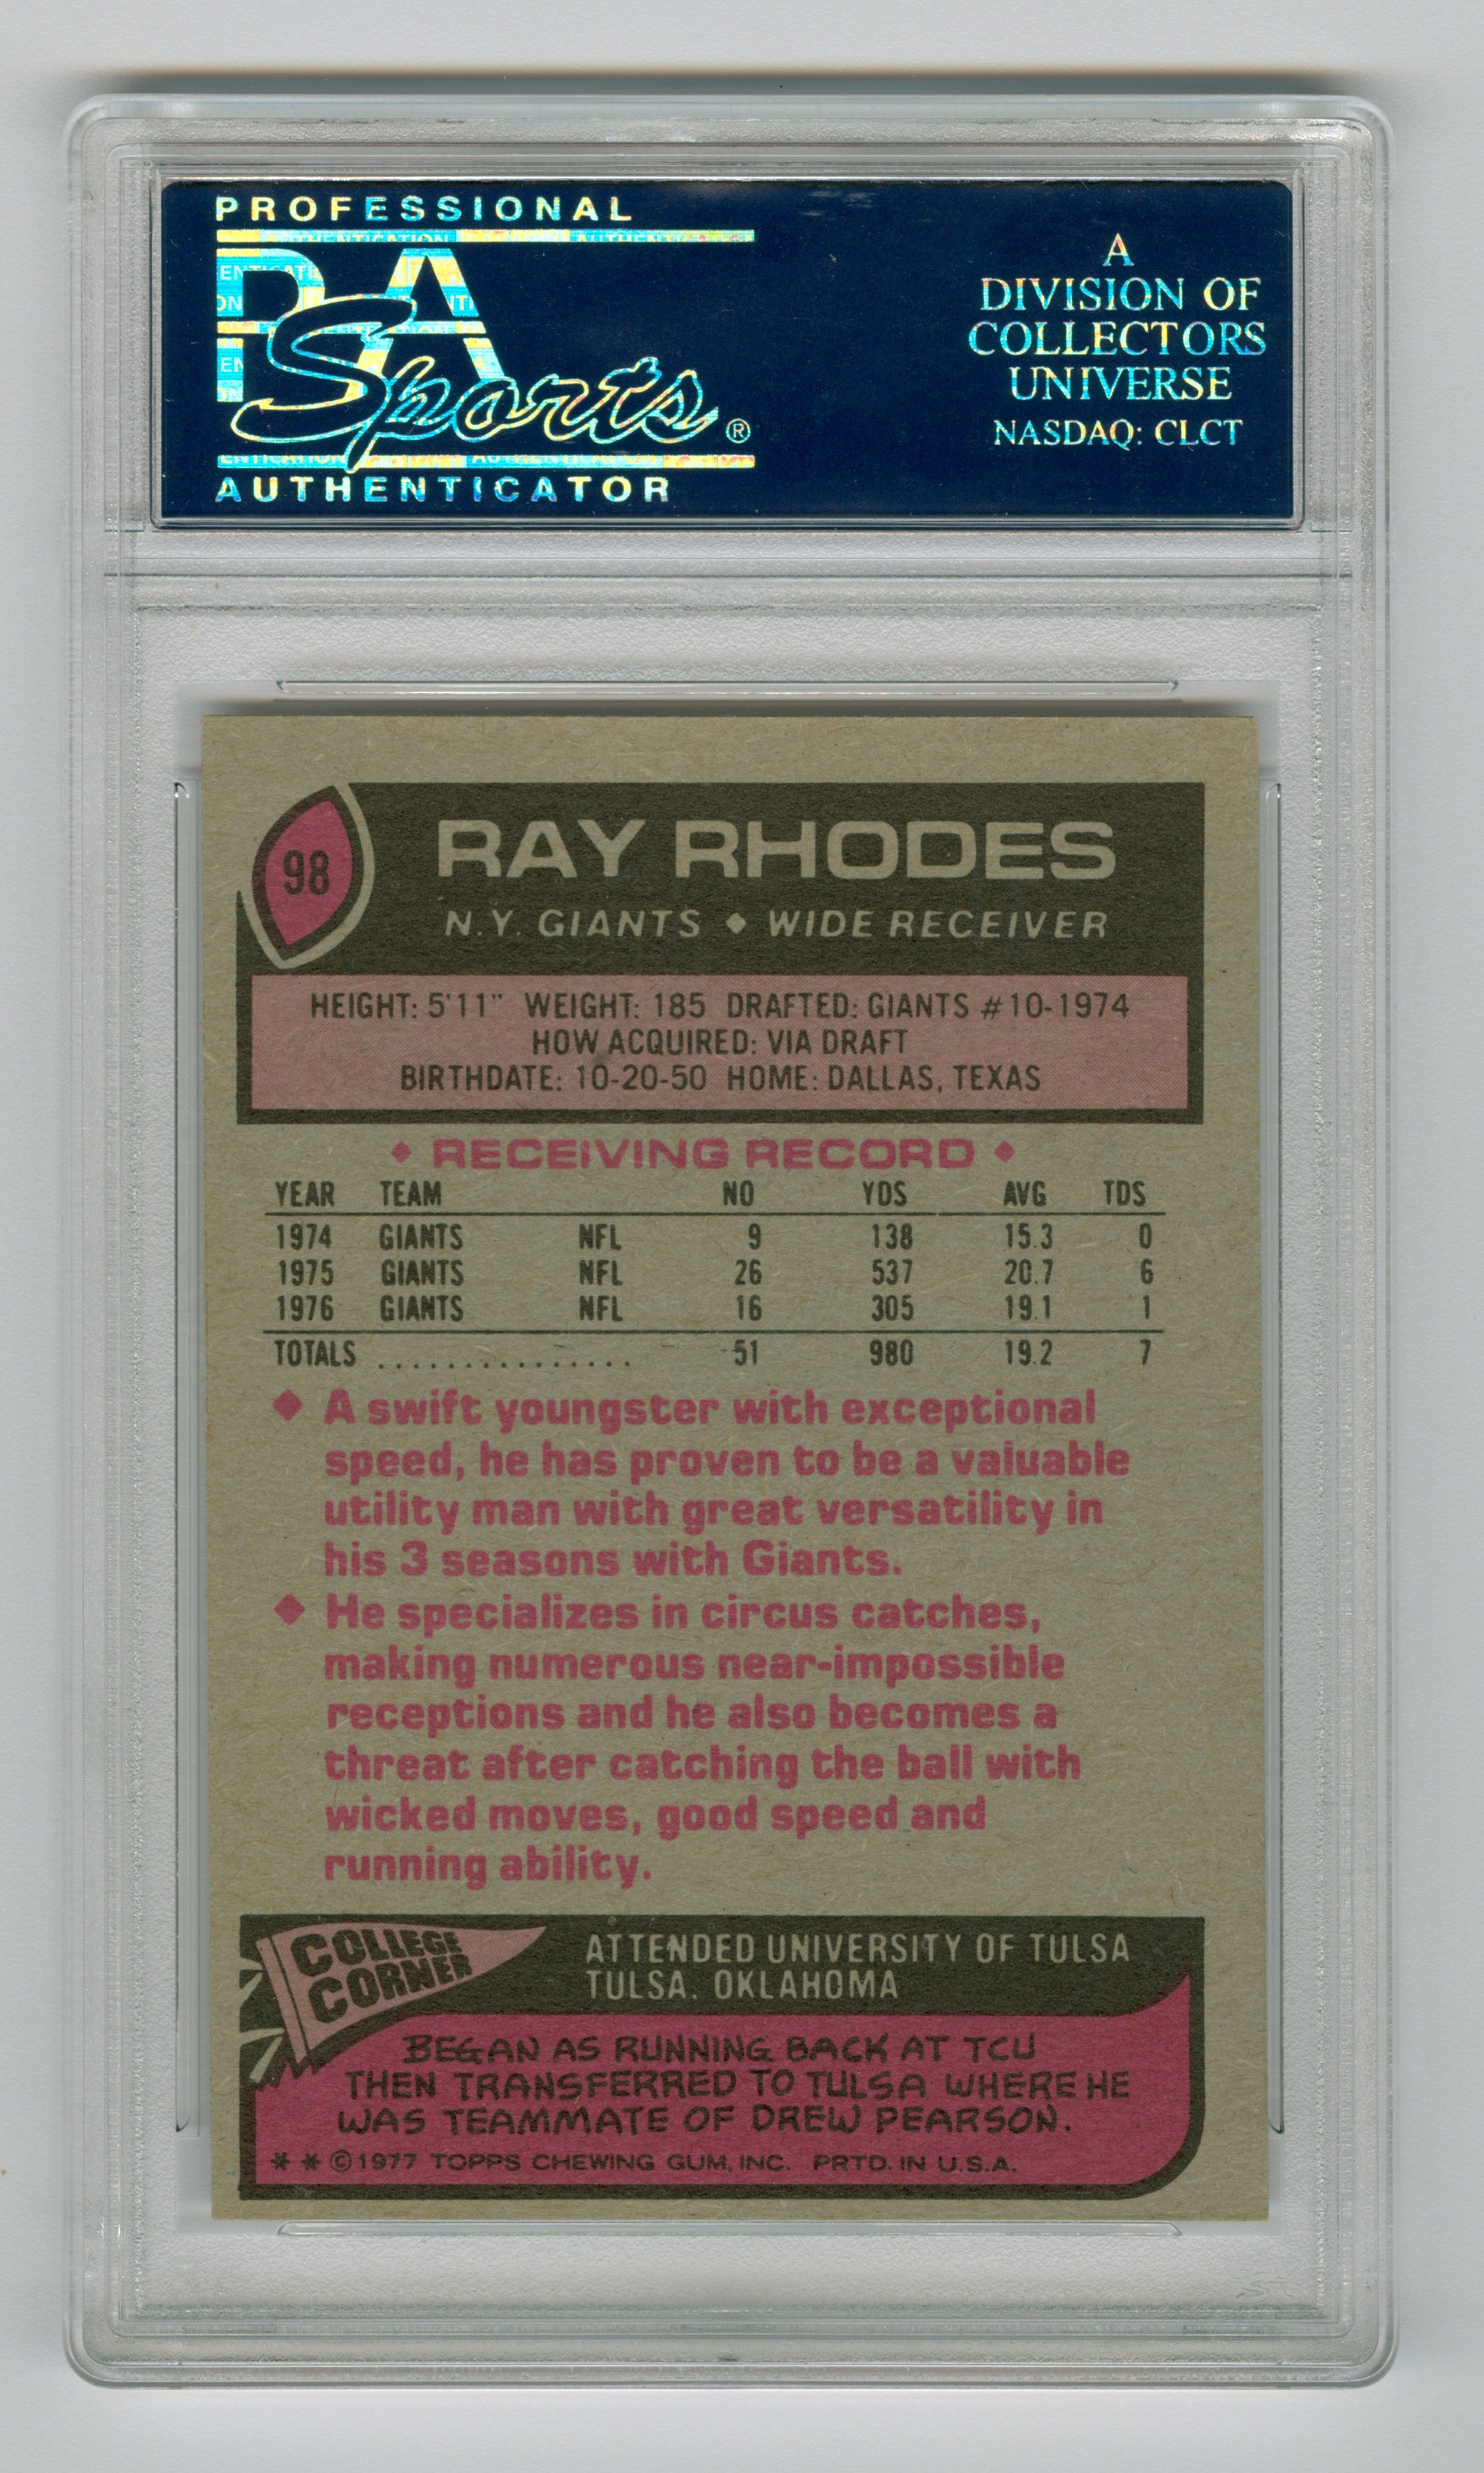 1977 Topps #98 Ray Rhodes PSA 6 (Rookie) | Eastridge Sports Cards